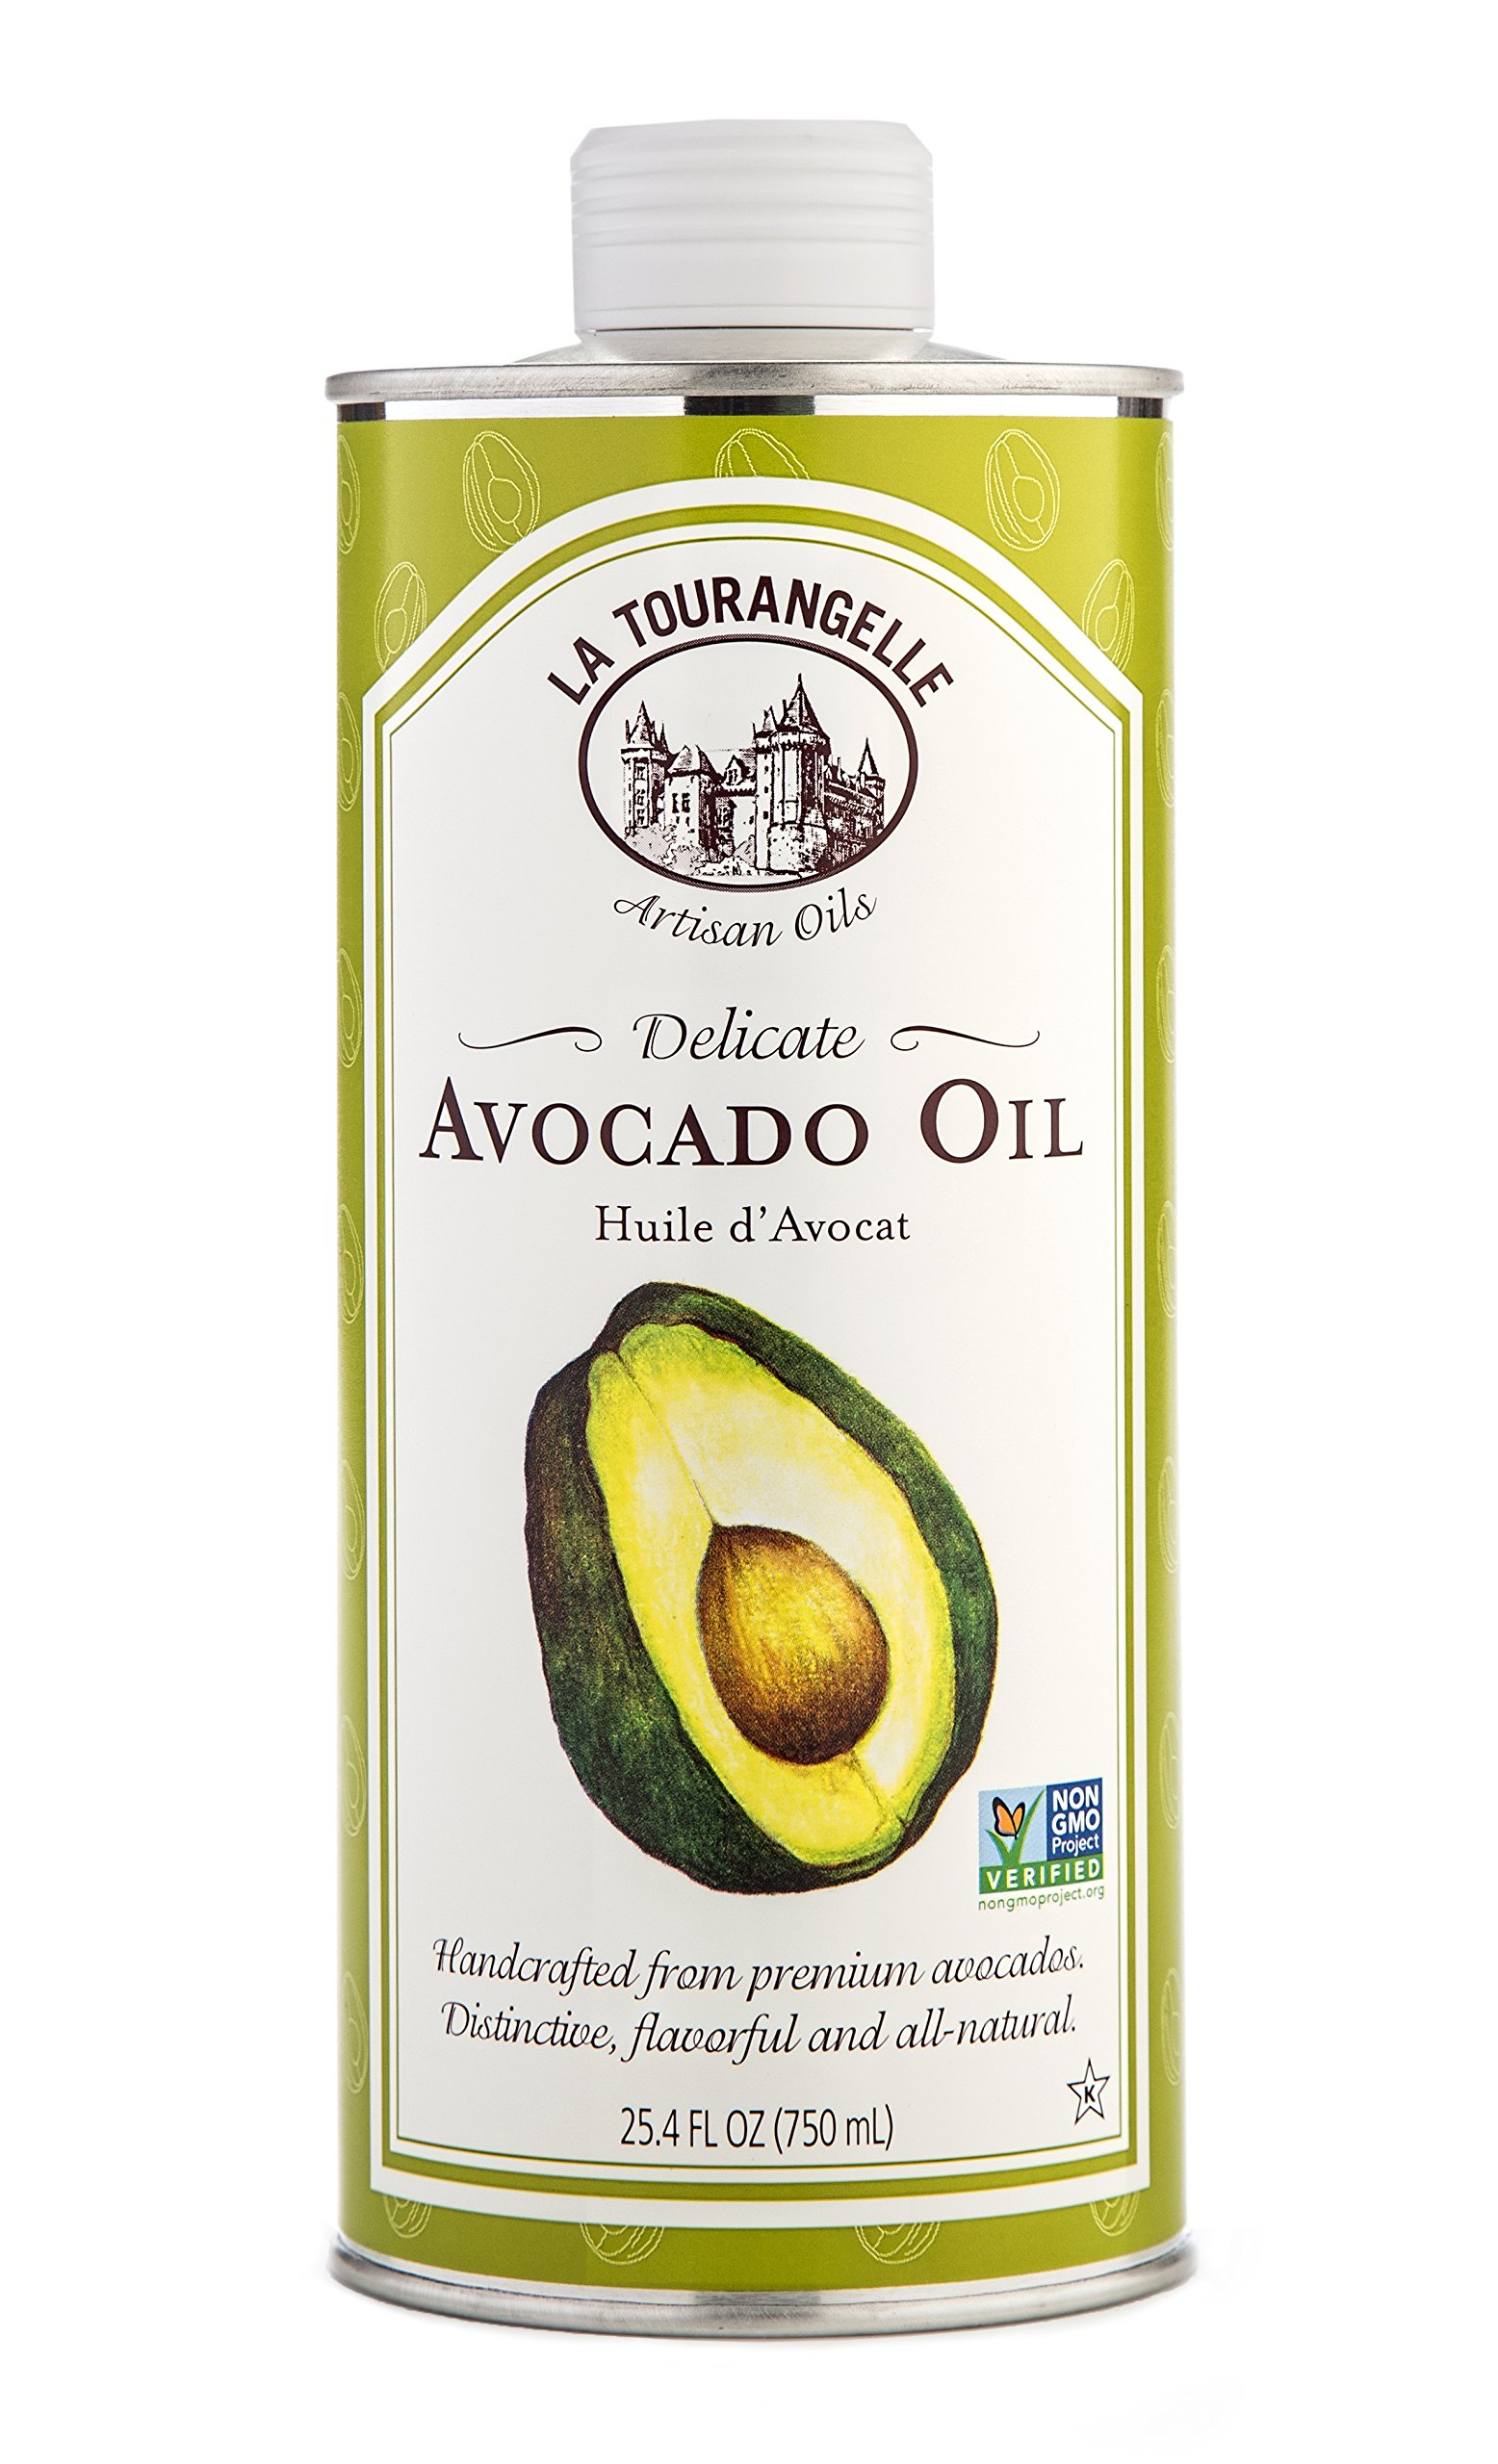 La Tourangelle Avocado Oil 25.4 Fl. Oz, All-Natural, Artisanal, Great for Salads, Fruit, Fish or Vegetables, Great Buttery Flavor